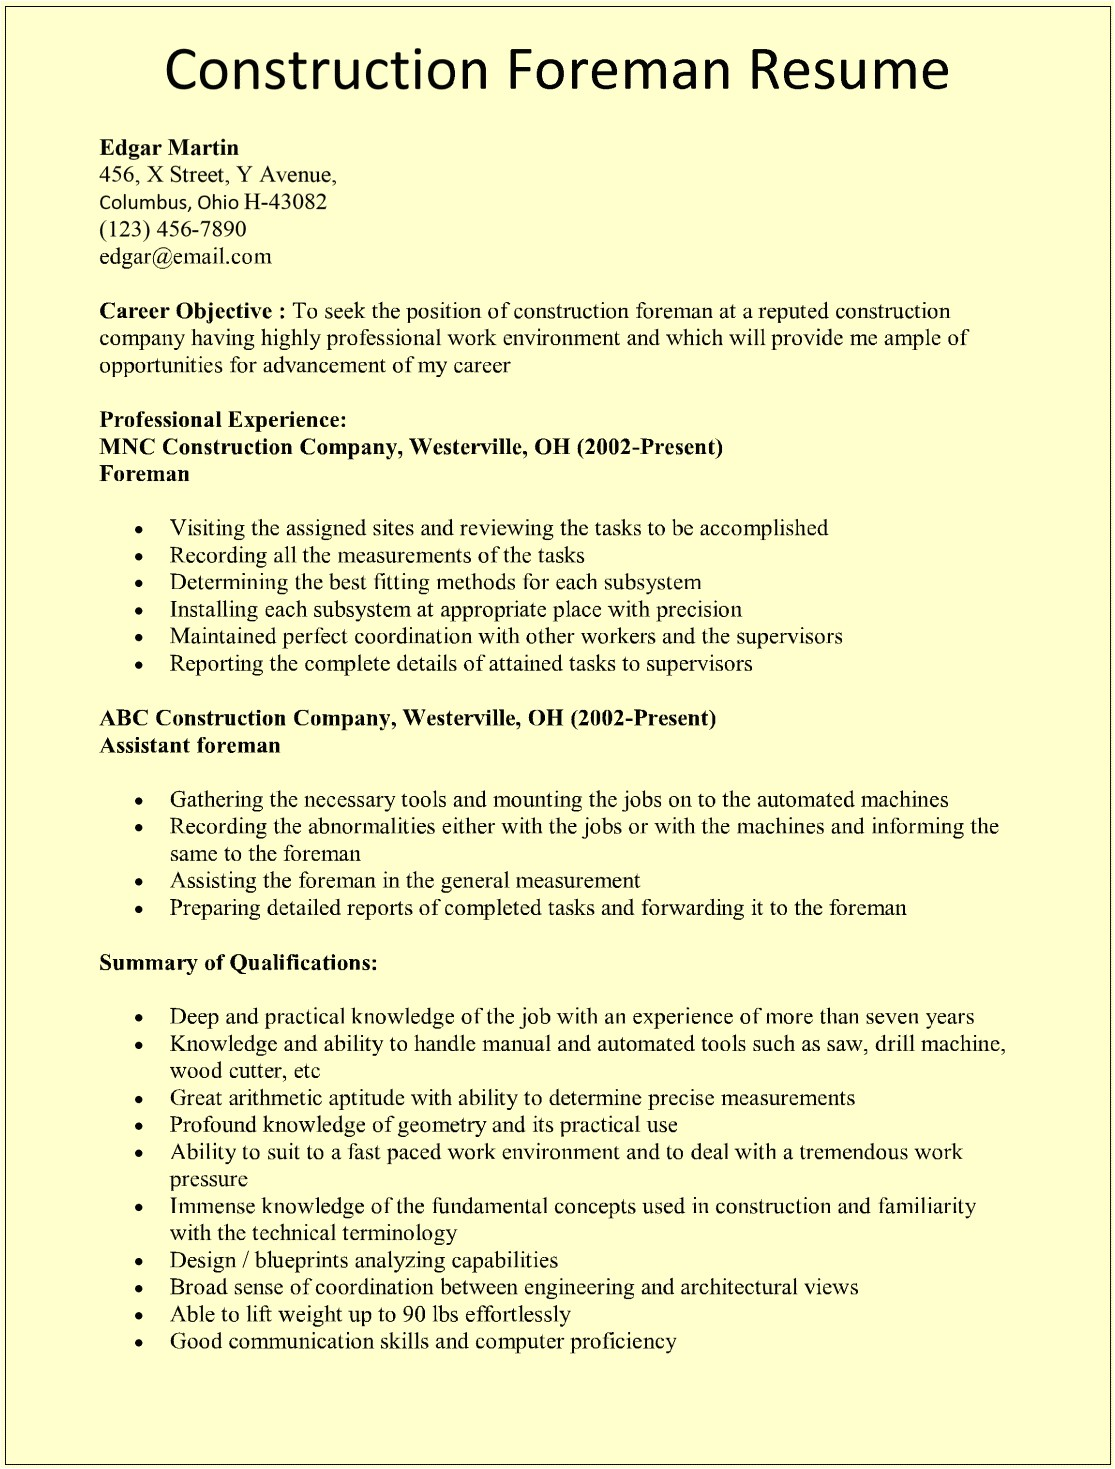 construction foreman resume